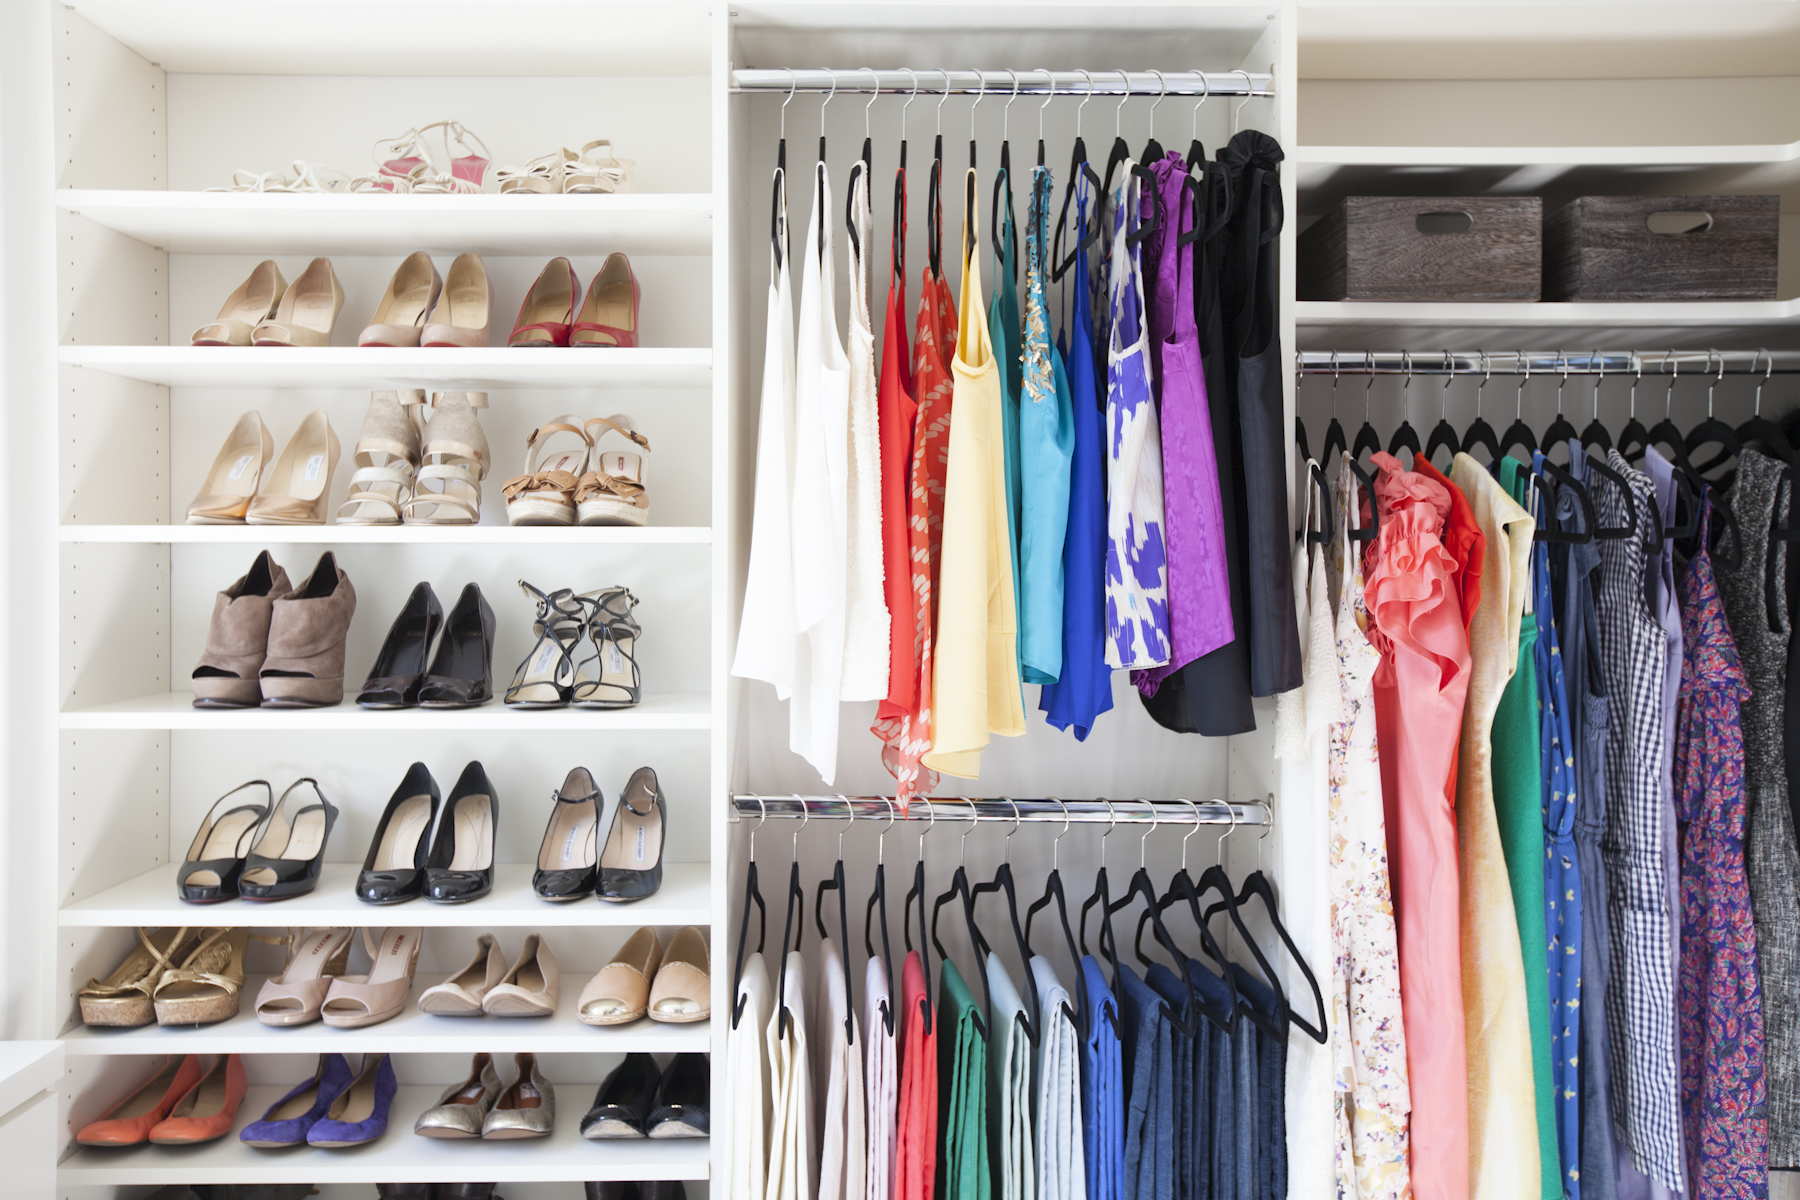 The First Trick To Having An Organized Closet Space Is Downsizing Your  Wardrobe. Take Inventory Of Your Closet, And If You Donu0027t Love An Item, ...